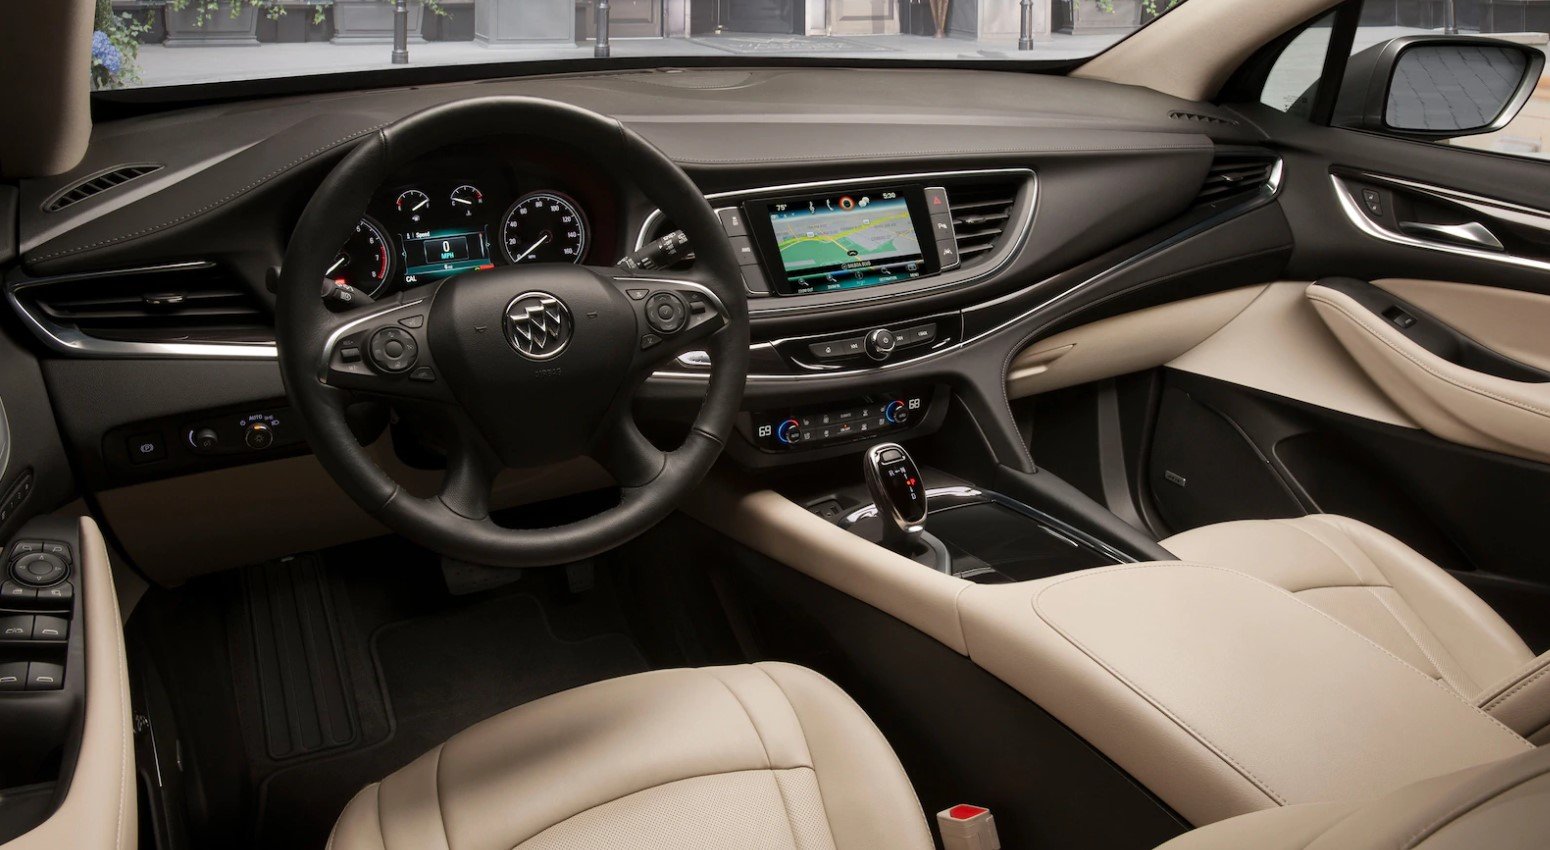 2019 Buick Enclave Front Interior Dashboard Picture